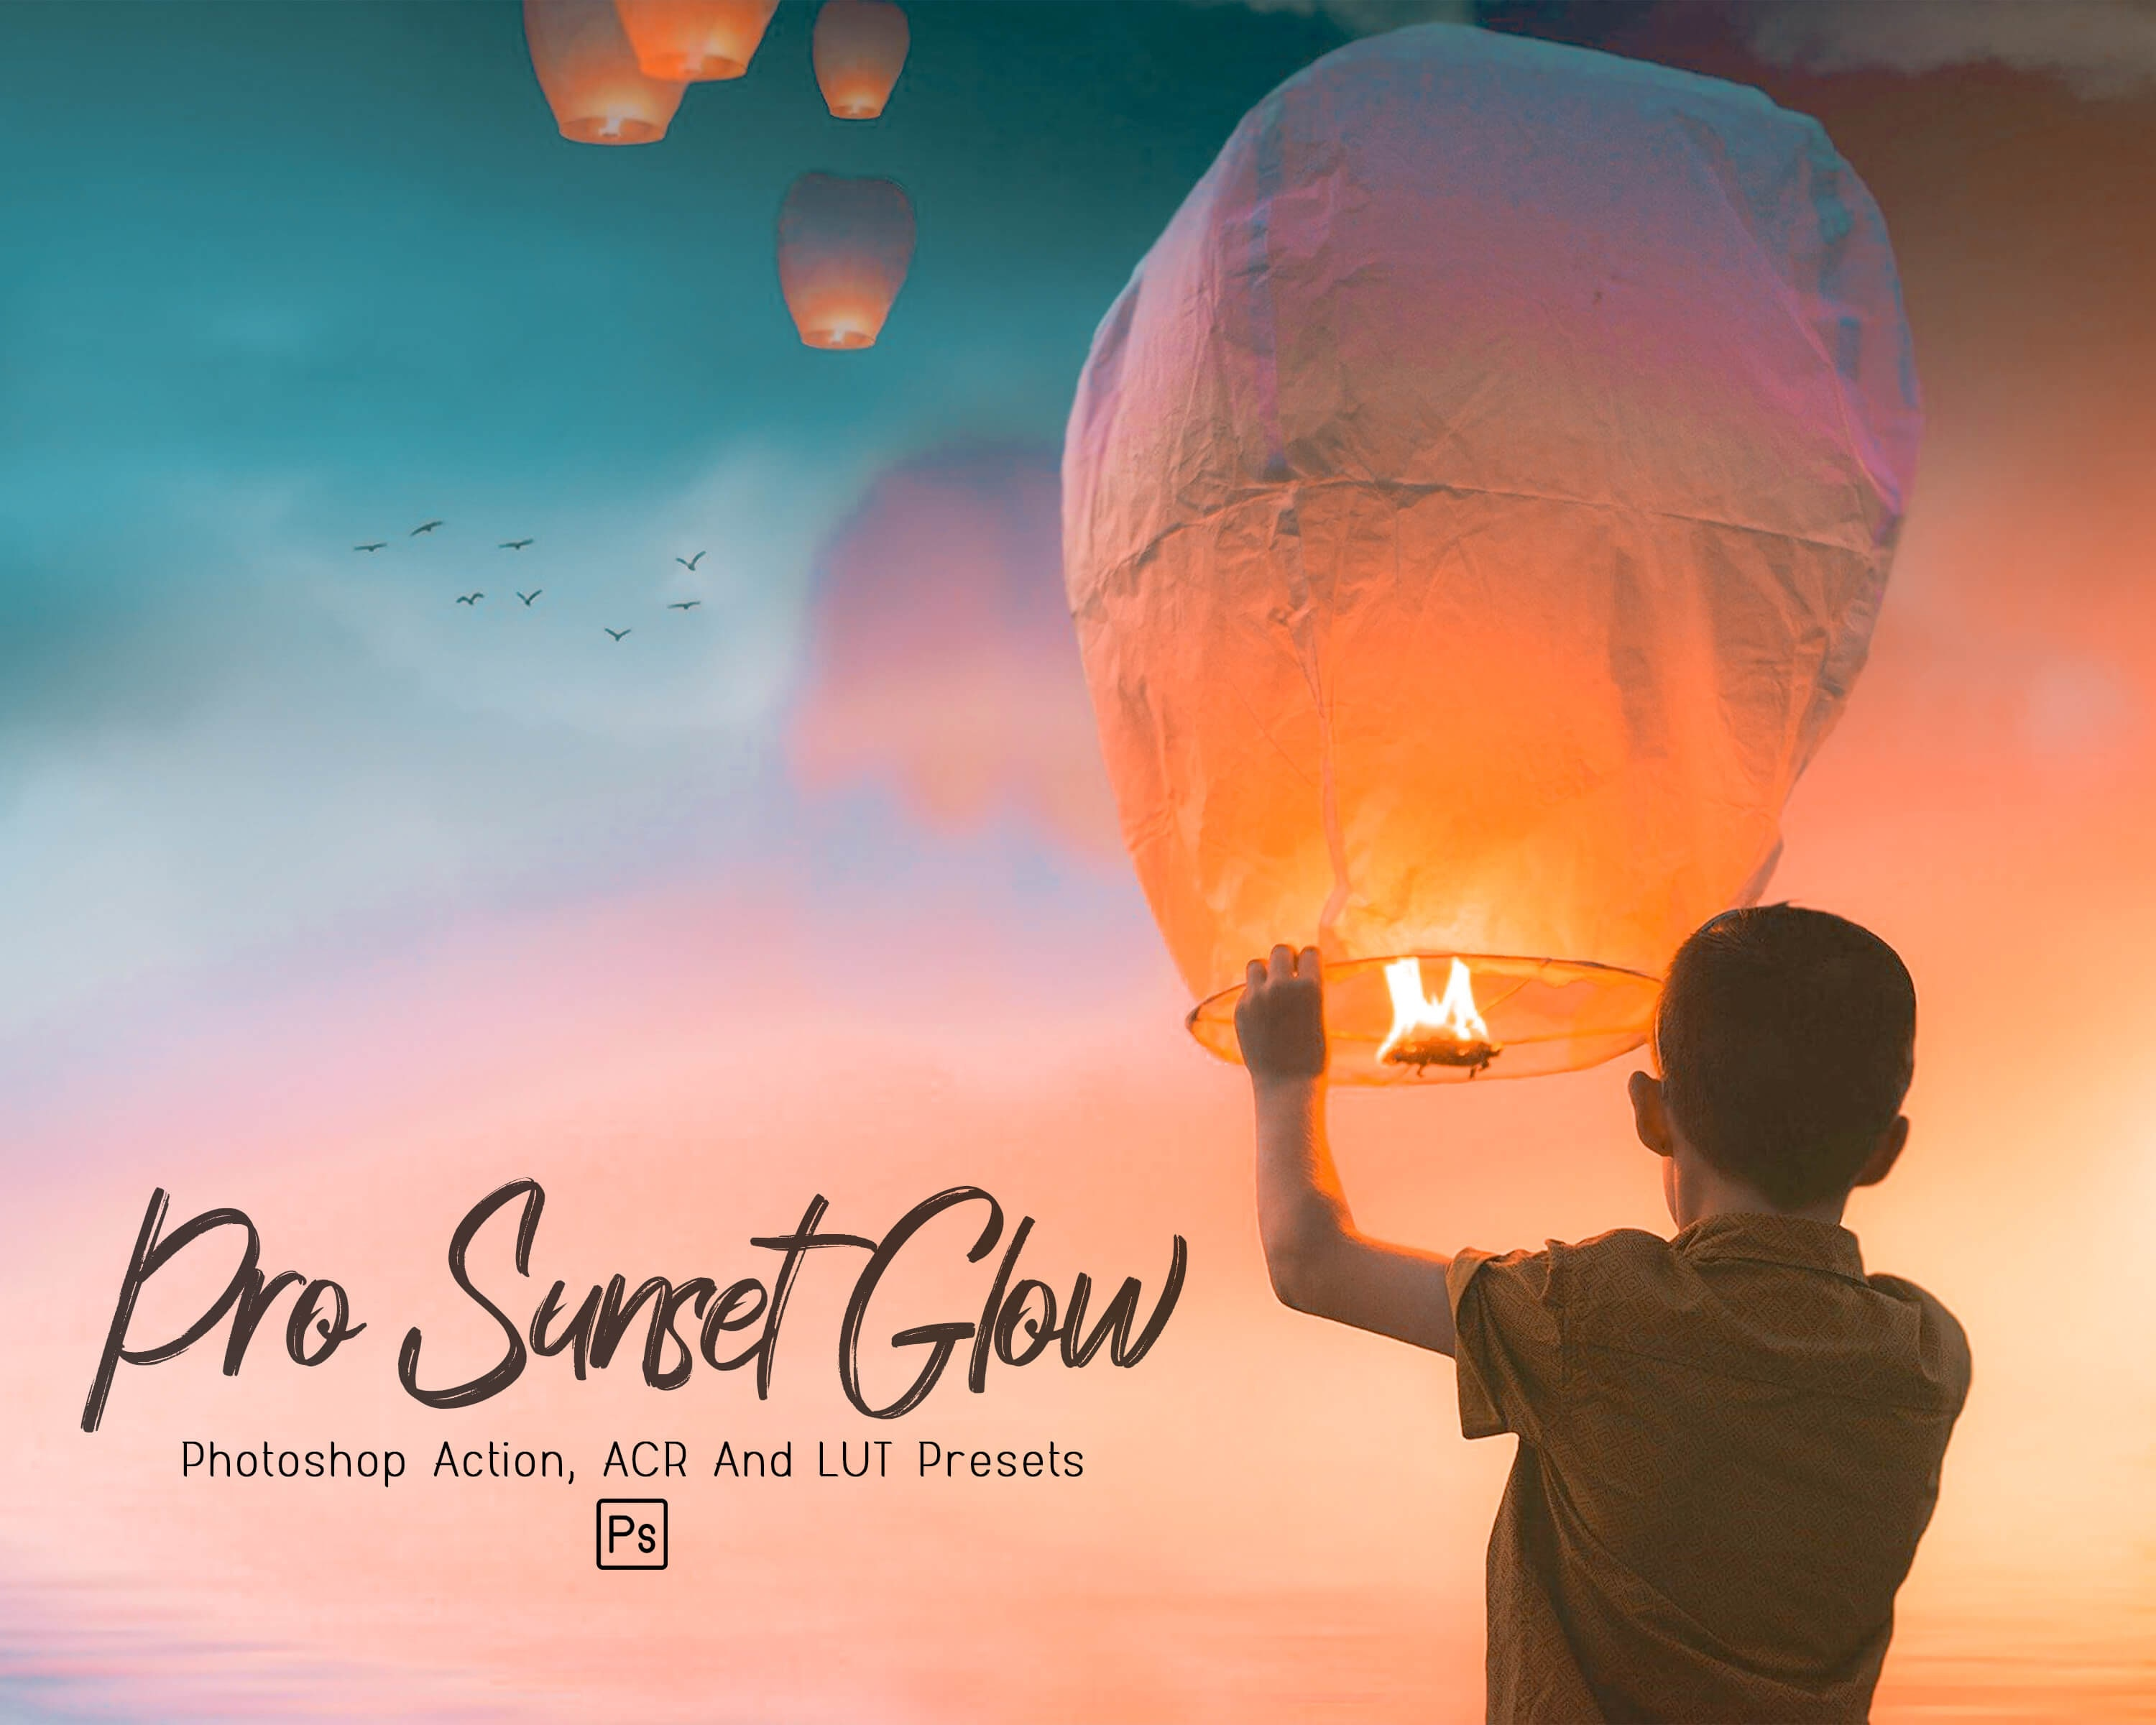 Download 10 Pro Hawaii Photoshop Actions, ACR, LUT Presets